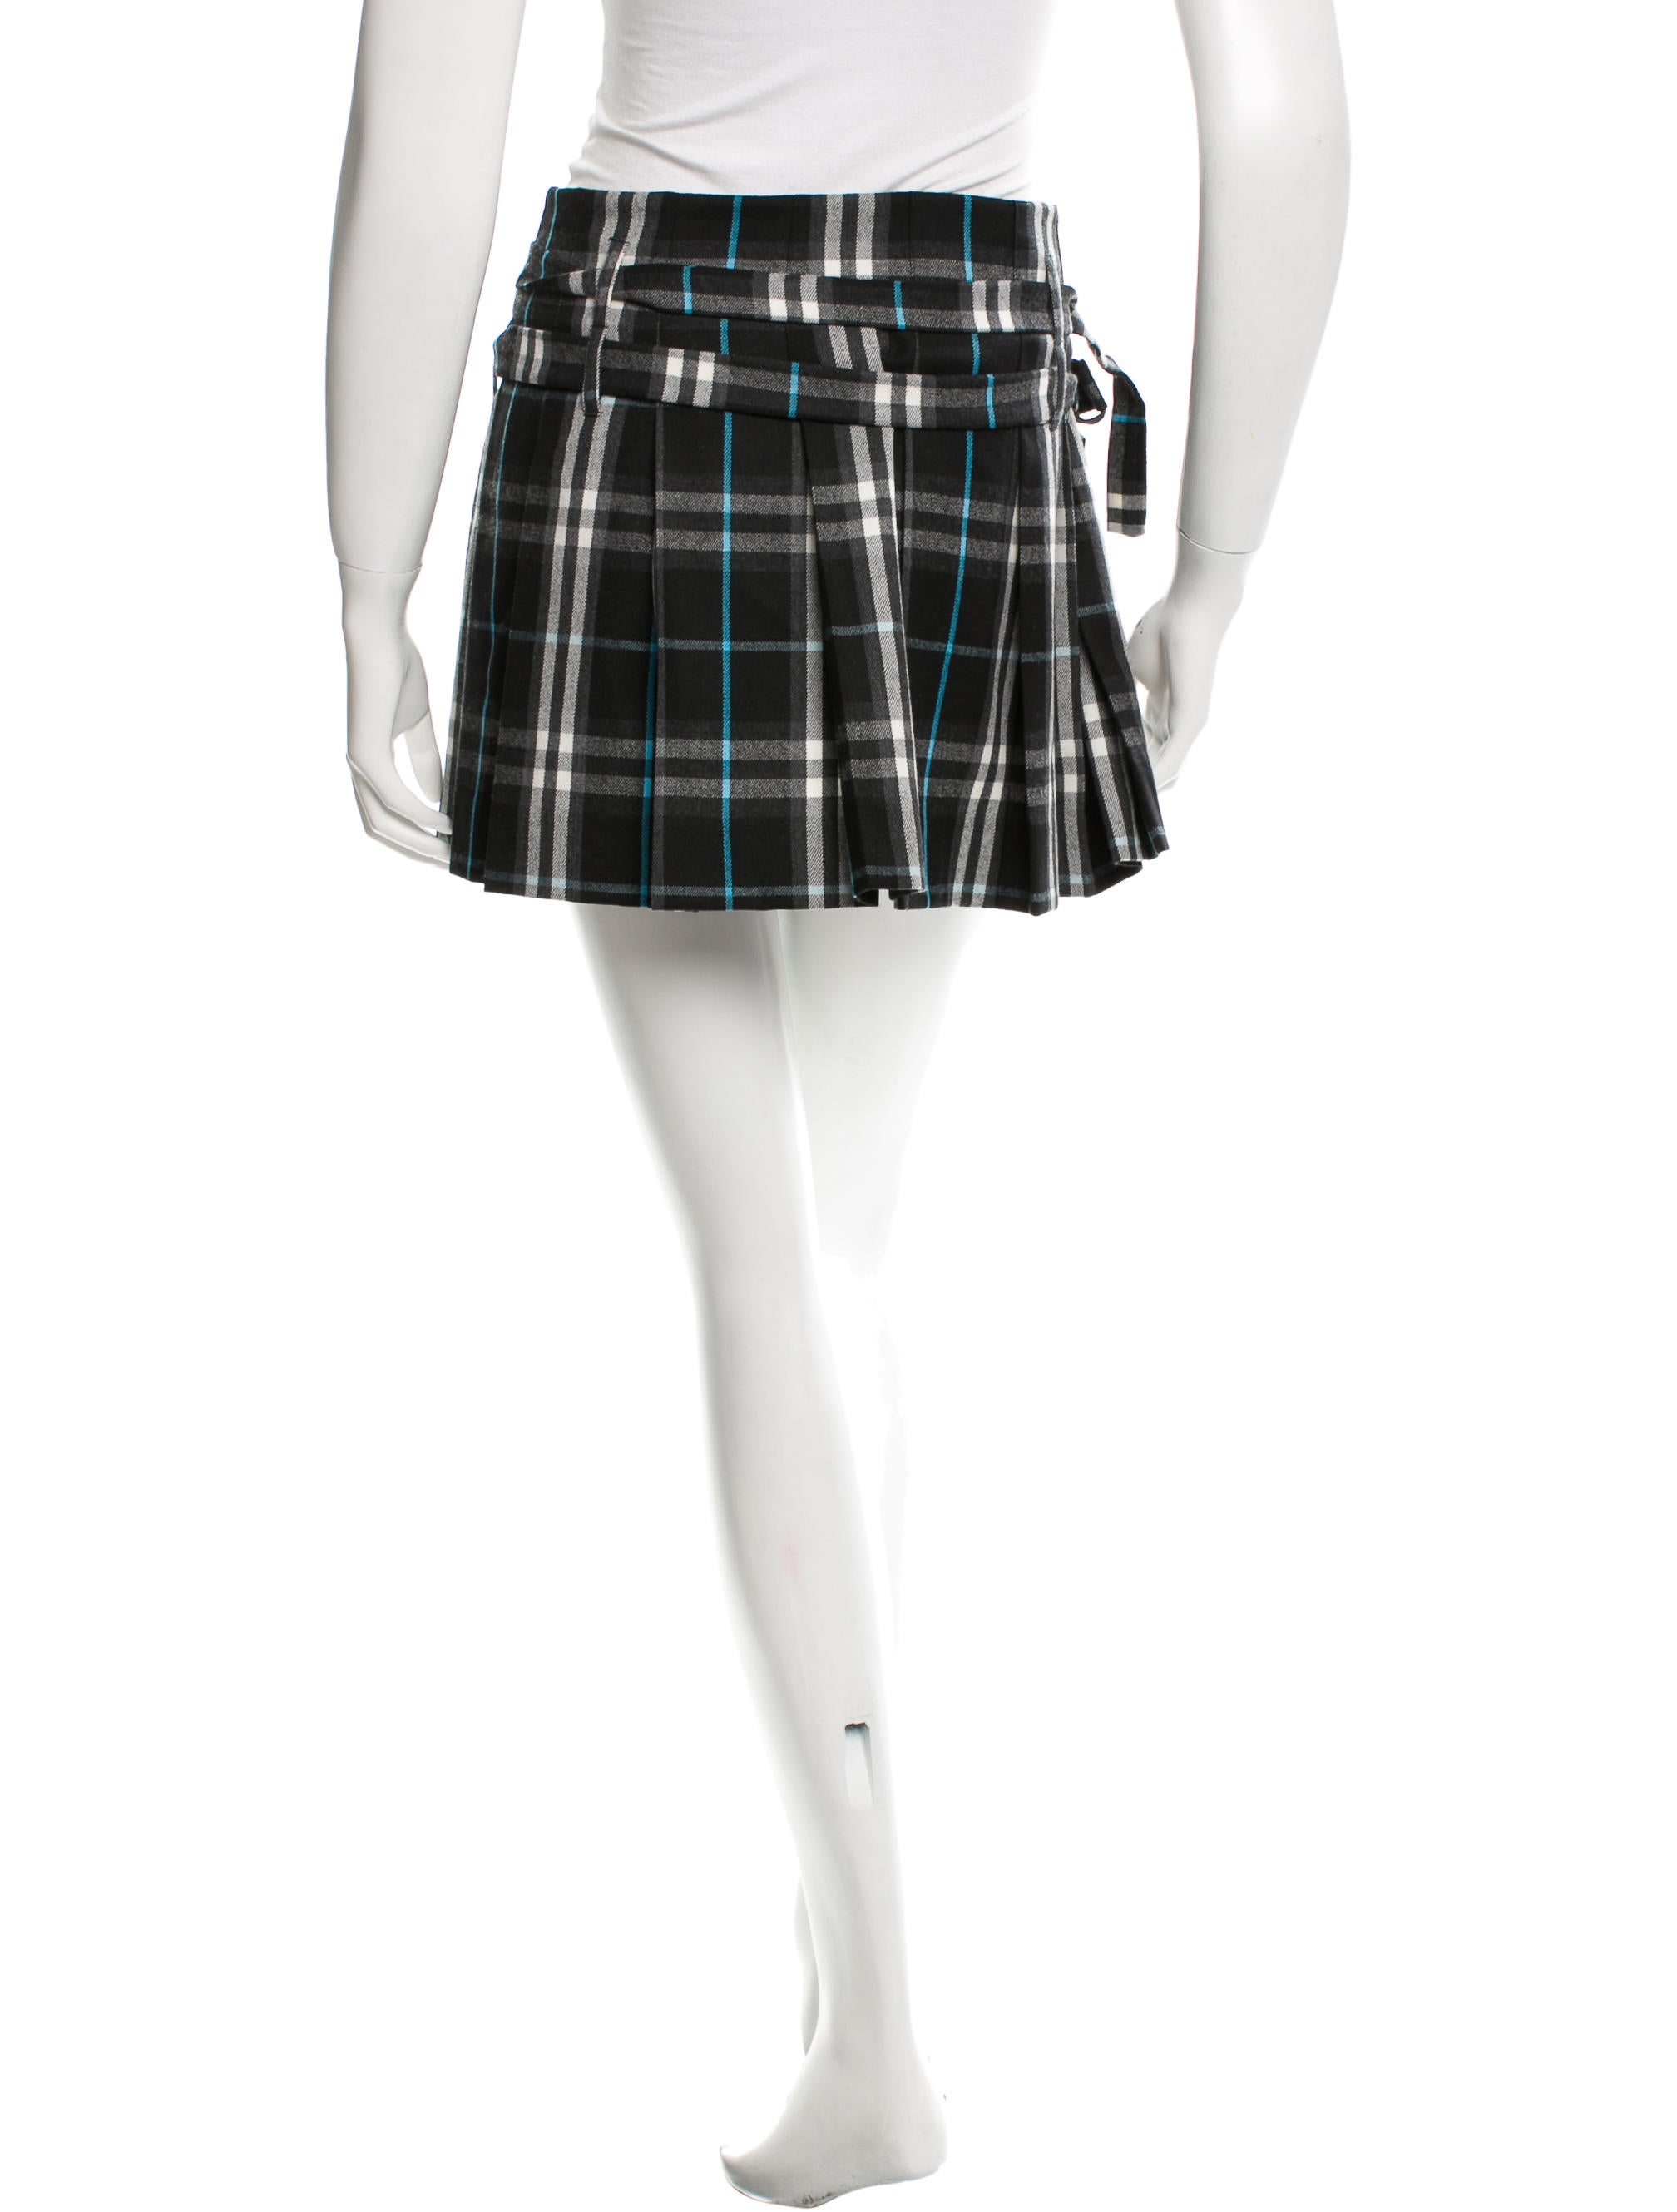 Available in tartan wool or PV material for wash-and-wear ease. Shop for All Your Celtic Fashion at USA Kilts! USA Kilts proudly offers a wide range of unique and custom-made items for gaelic women ranging from handbags and purses to sweaters and shawls to mini kilts and kilted skirts.